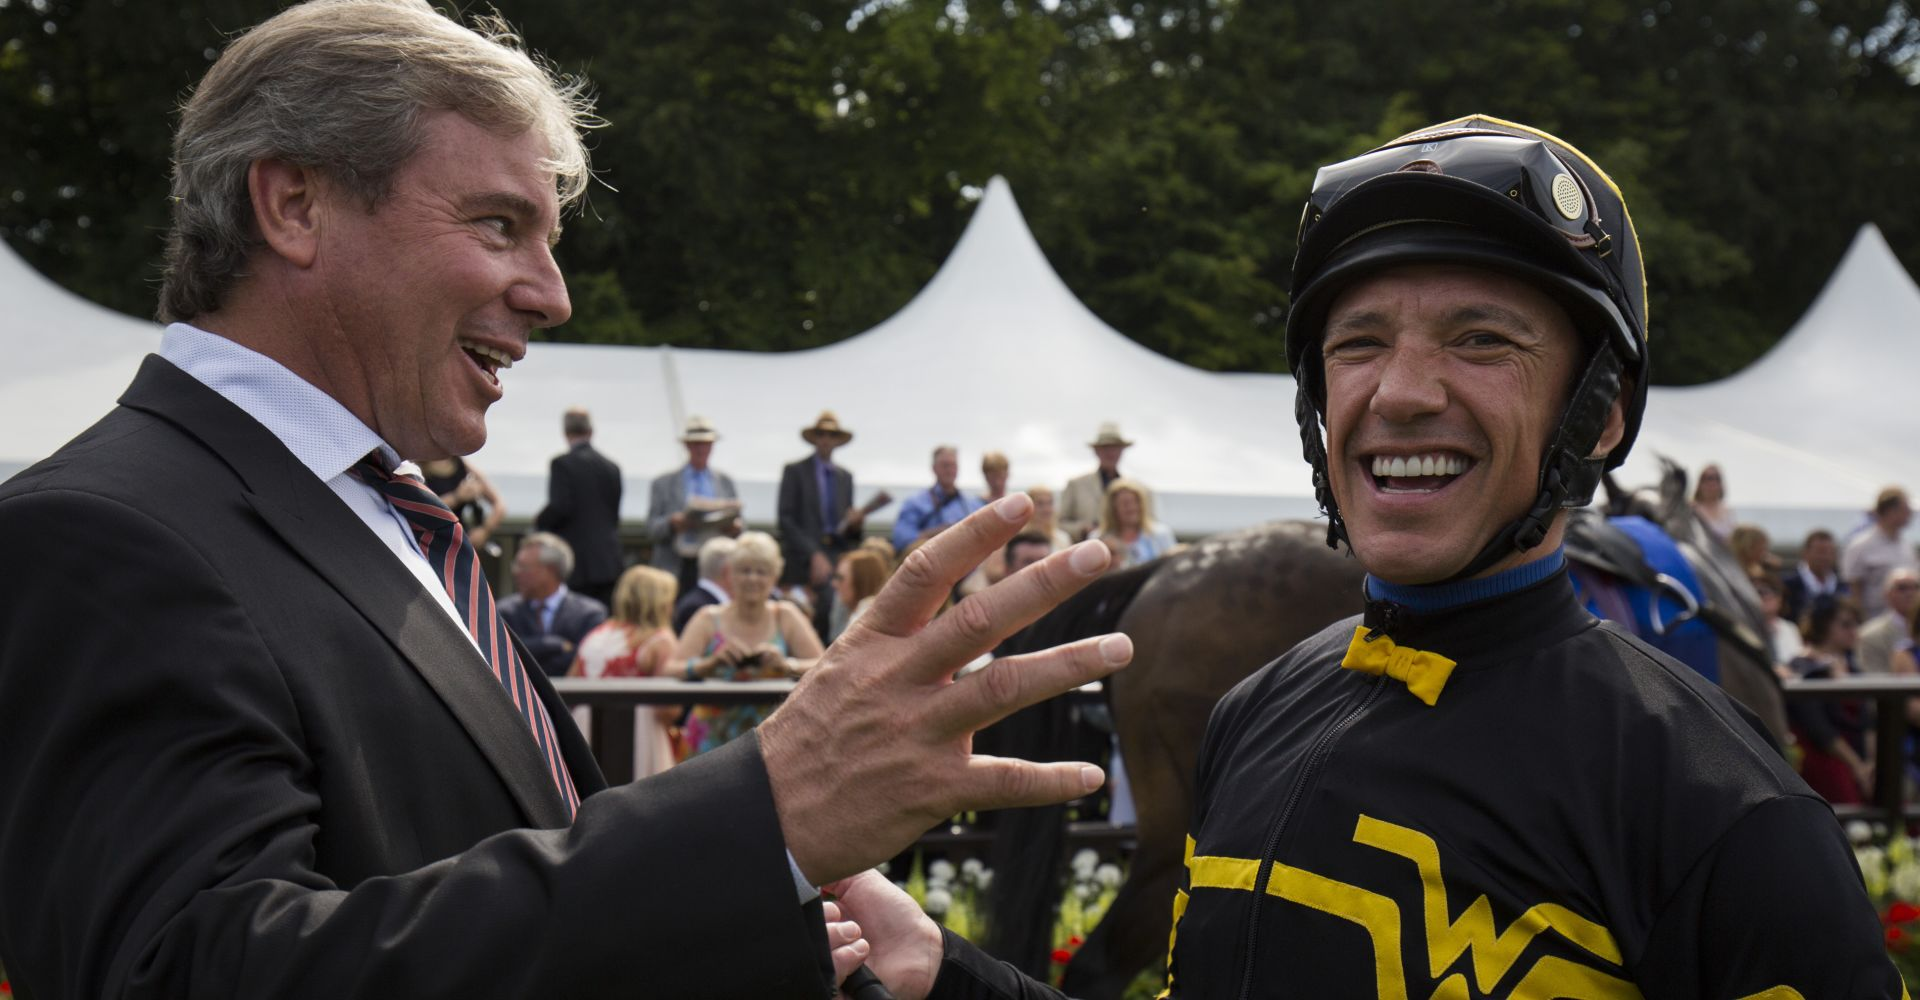 Wesley Ward and Frankie Dettori teamed up to take the 2015 edition of the Diamond Jubilee Stakes at Royal Ascot